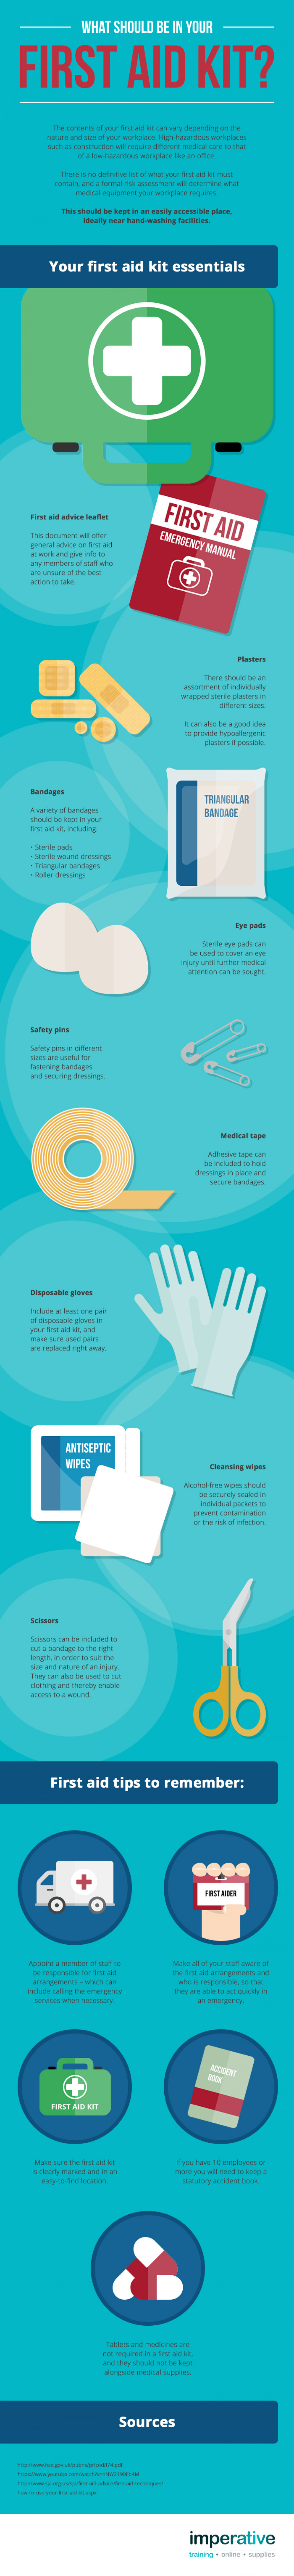 What should be in your first aid kit? | imperative training Infographic